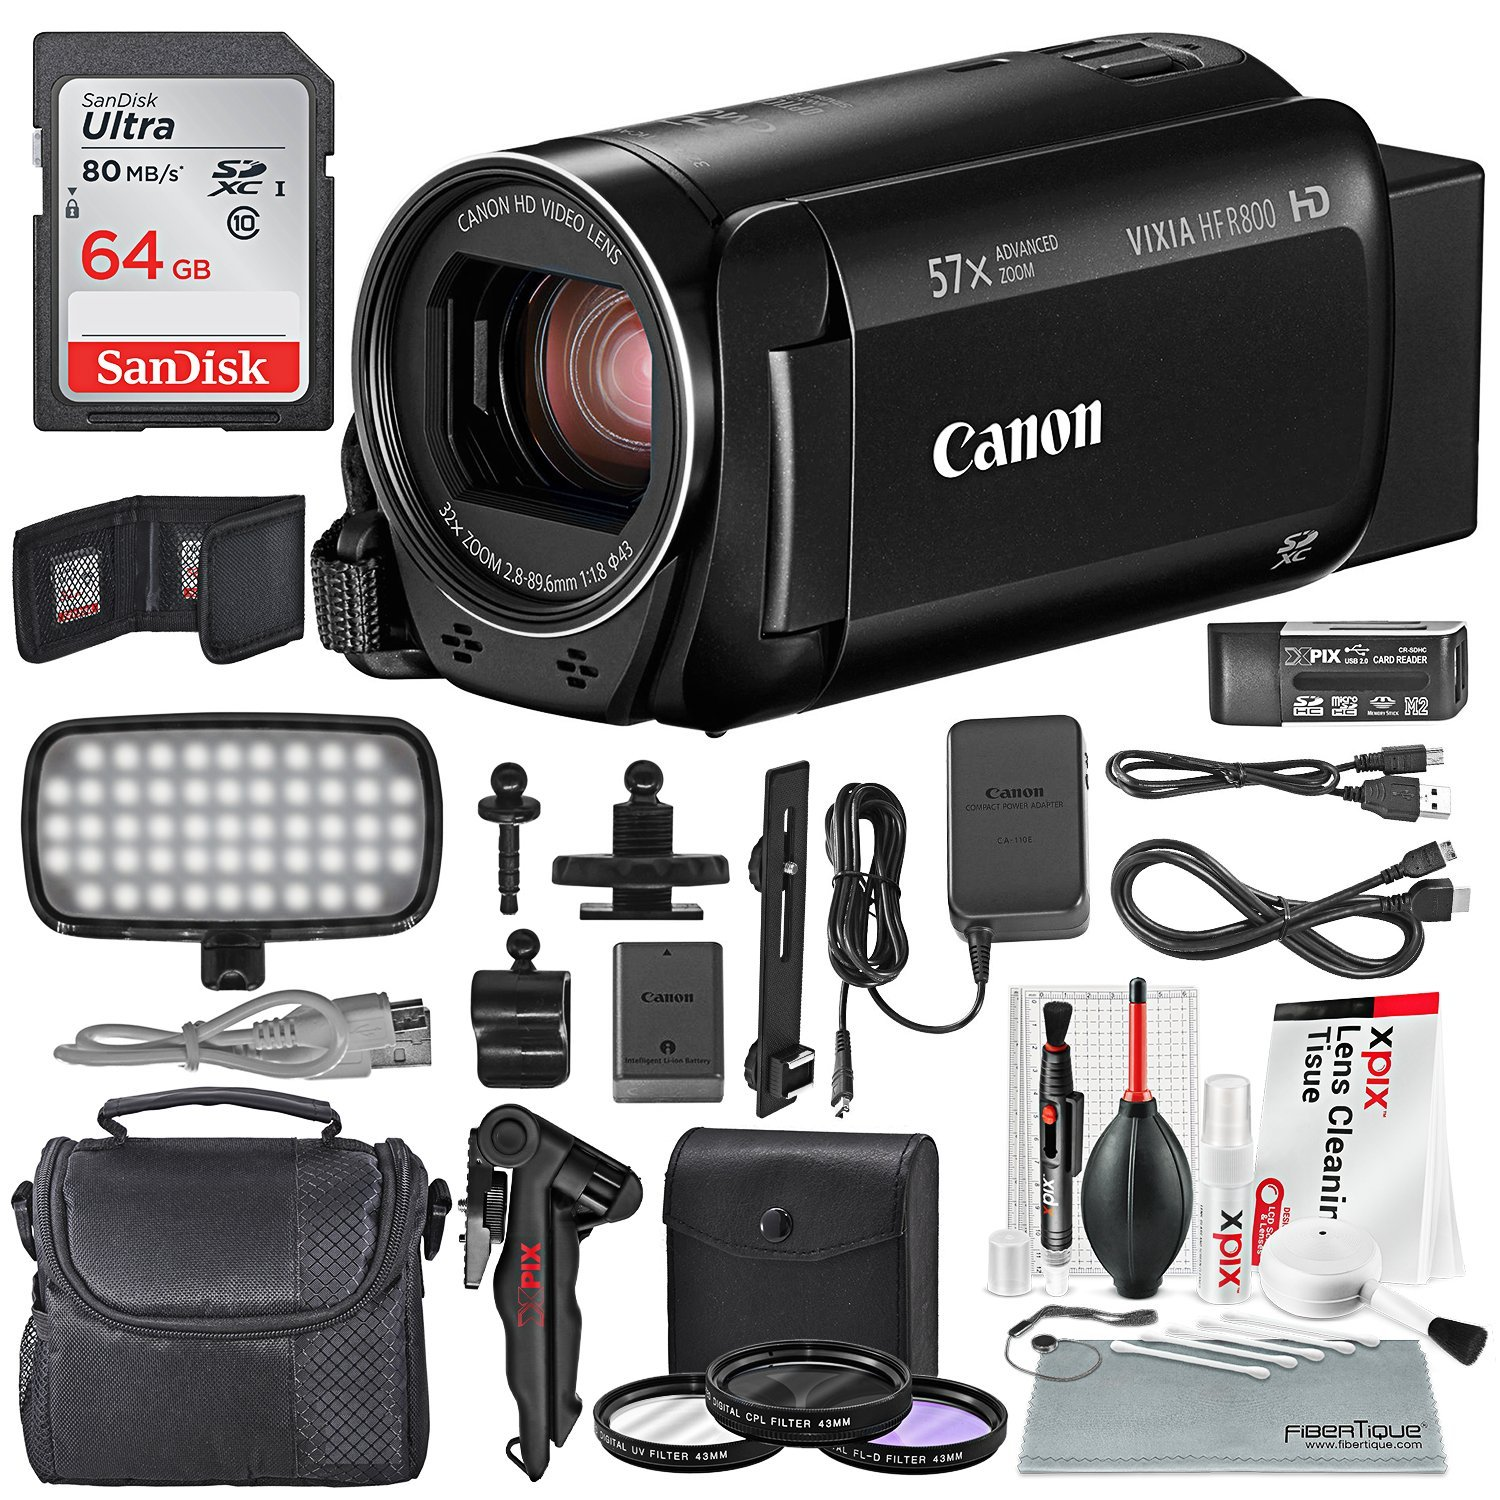 Canon Vixia HF R800 HD Camcorder (Black) Deluxe Bundle W/ Camcorder Case, 64 GB SD Card, 3 Pc. Filter Kit, LED Light Kit, and Xpix Cleaning Accessories by Photo Savings